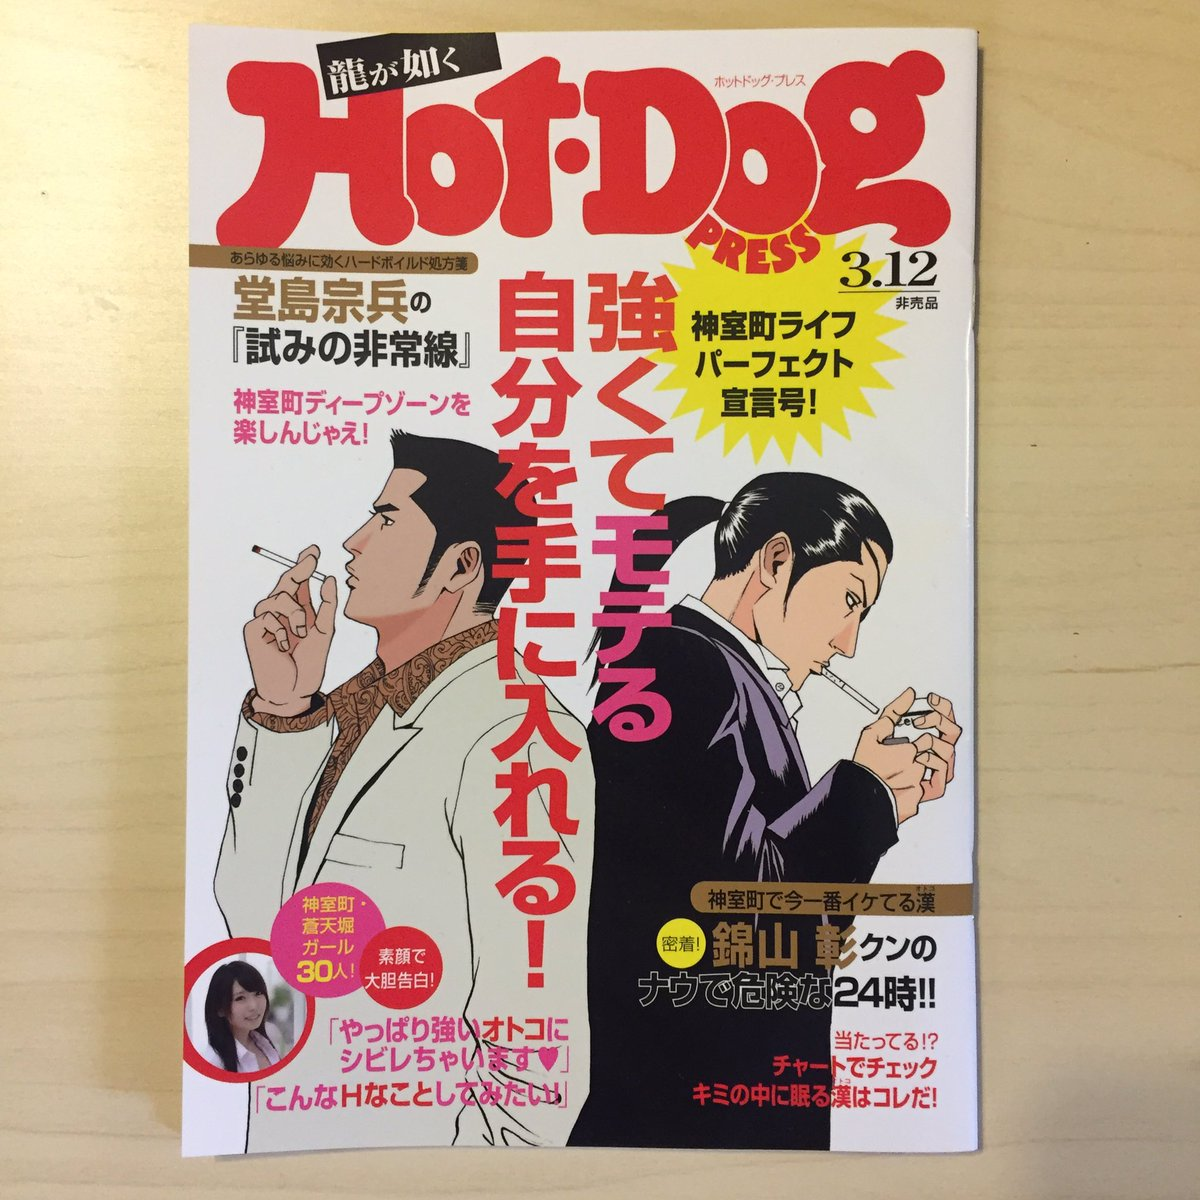 Brandon Boyer On Twitter Tracking Down A Copy Of This Yakuza 0 Promo Issue Of Hot Dog Was Worth It Just For This Day In The Life Of Nishiki Happy Y0 Release Day Https T Co Wuchitykuq The two of you sat in nishiki's apartment. yakuza 0 promo issue of hot dog